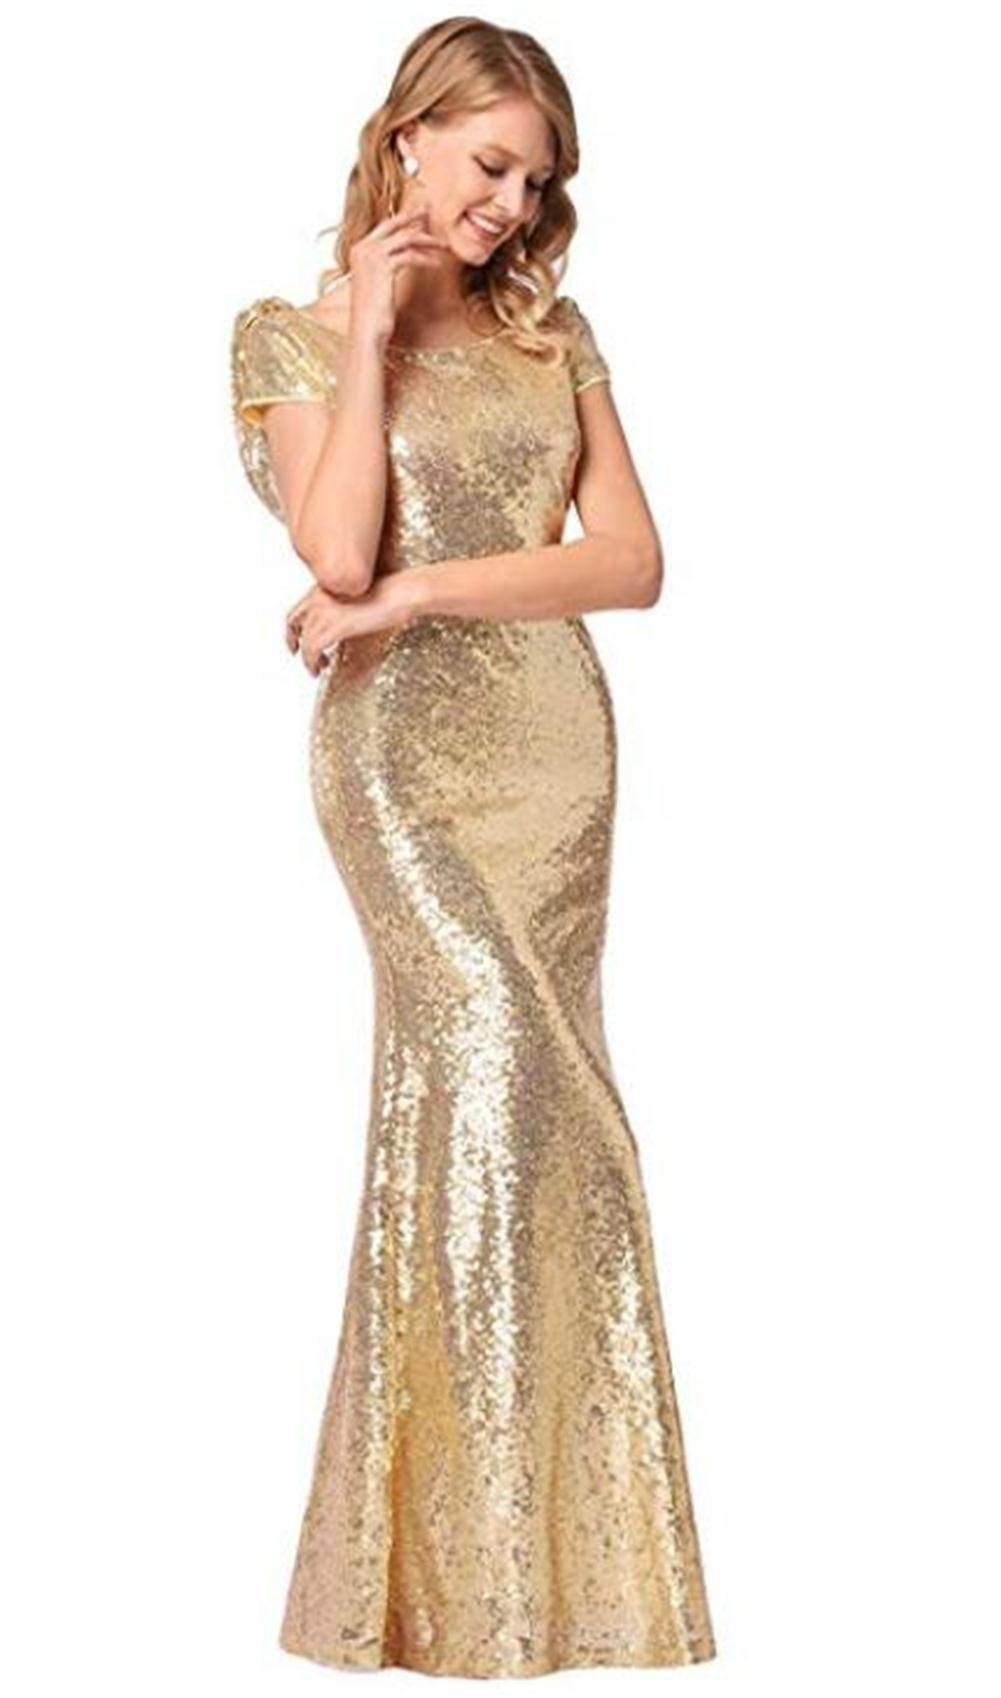 Luyeiand Rose Gold Sequin Bridesmaid Dresses Mermaid Sparkly Backless Wedding Party Gown,Gold,X-Large